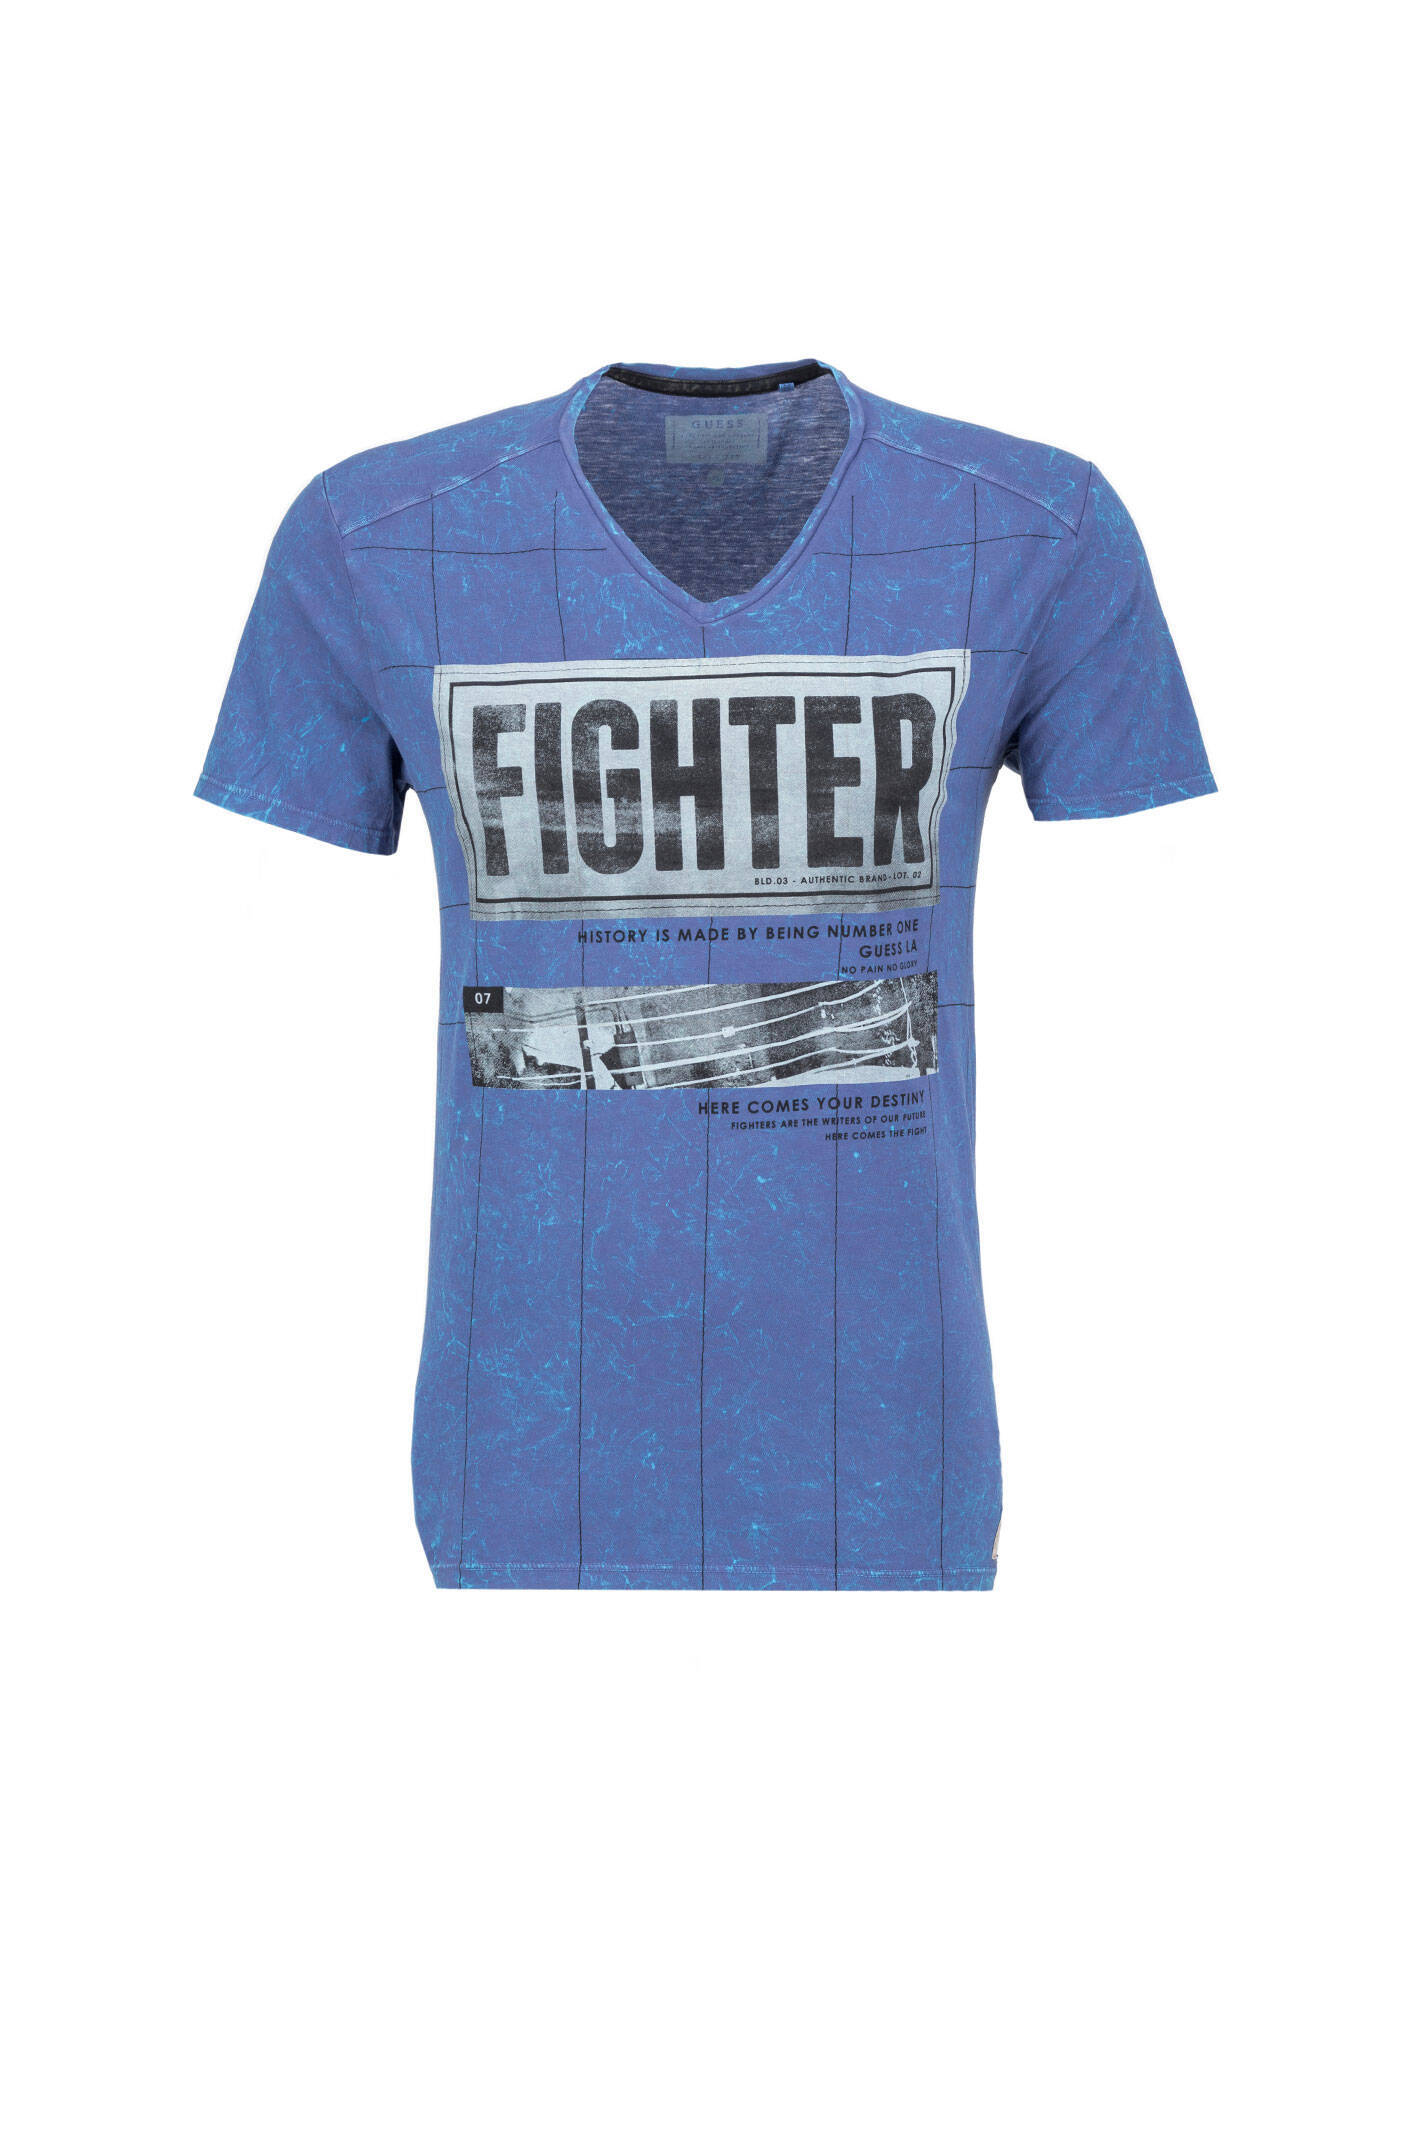 d4d5a8771b00d Fighter T-shirt Guess Jeans   Blue   Gomez.pl en